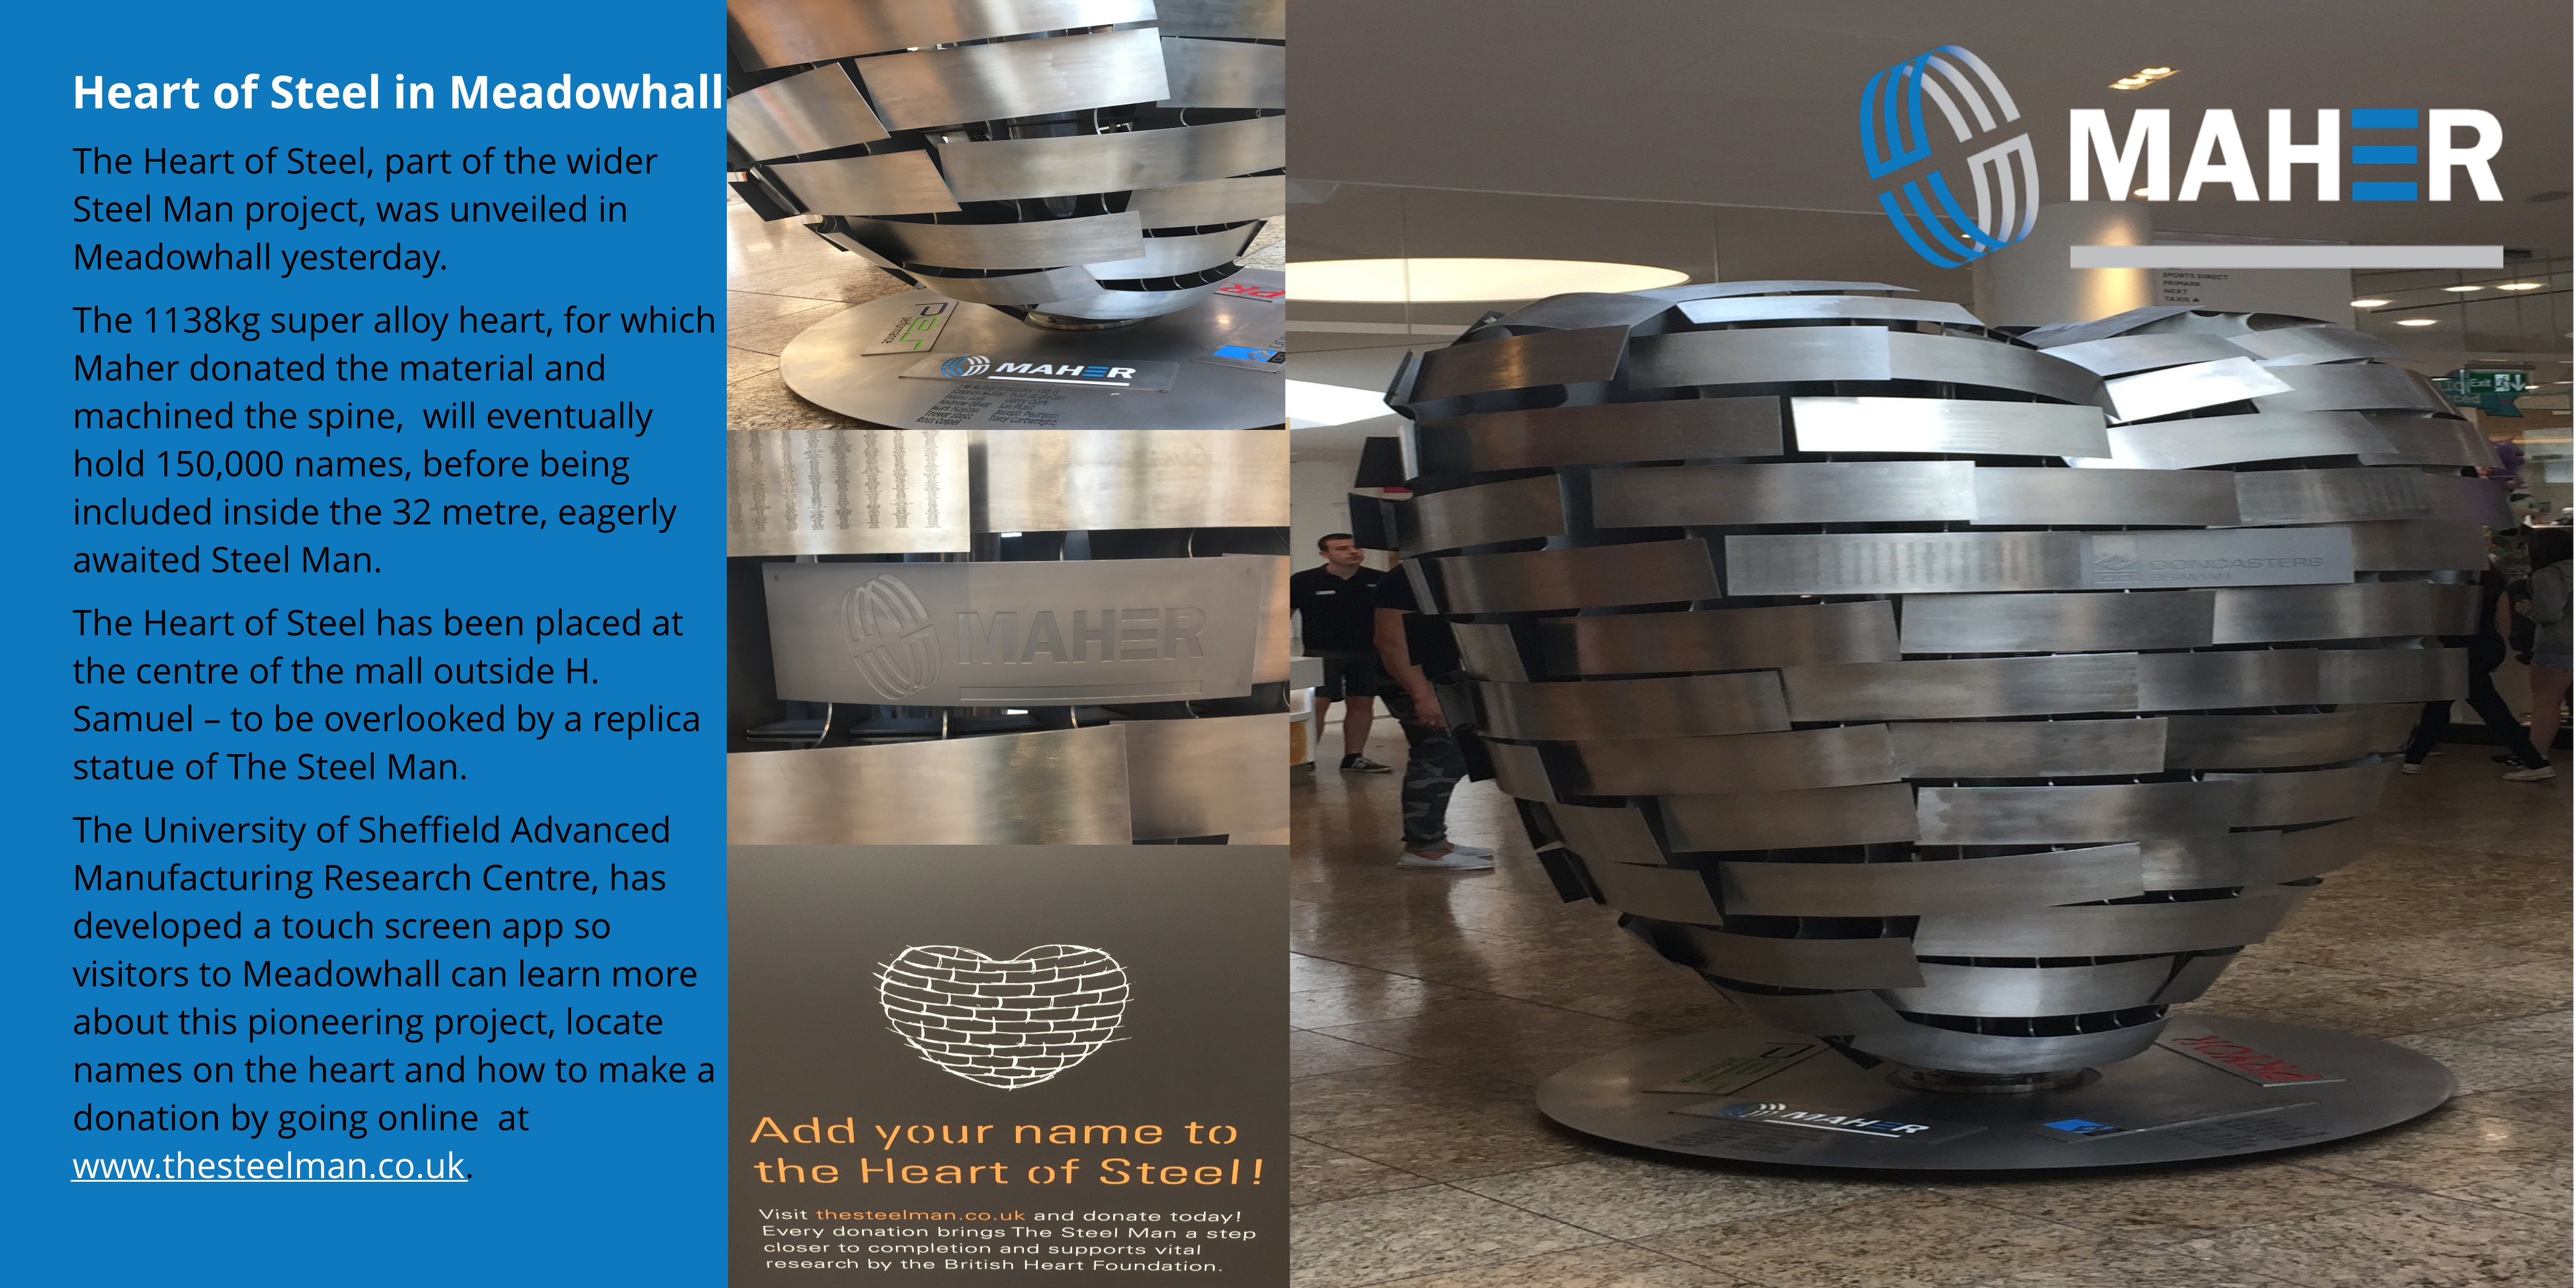 Heart of Steel in Meadowhall